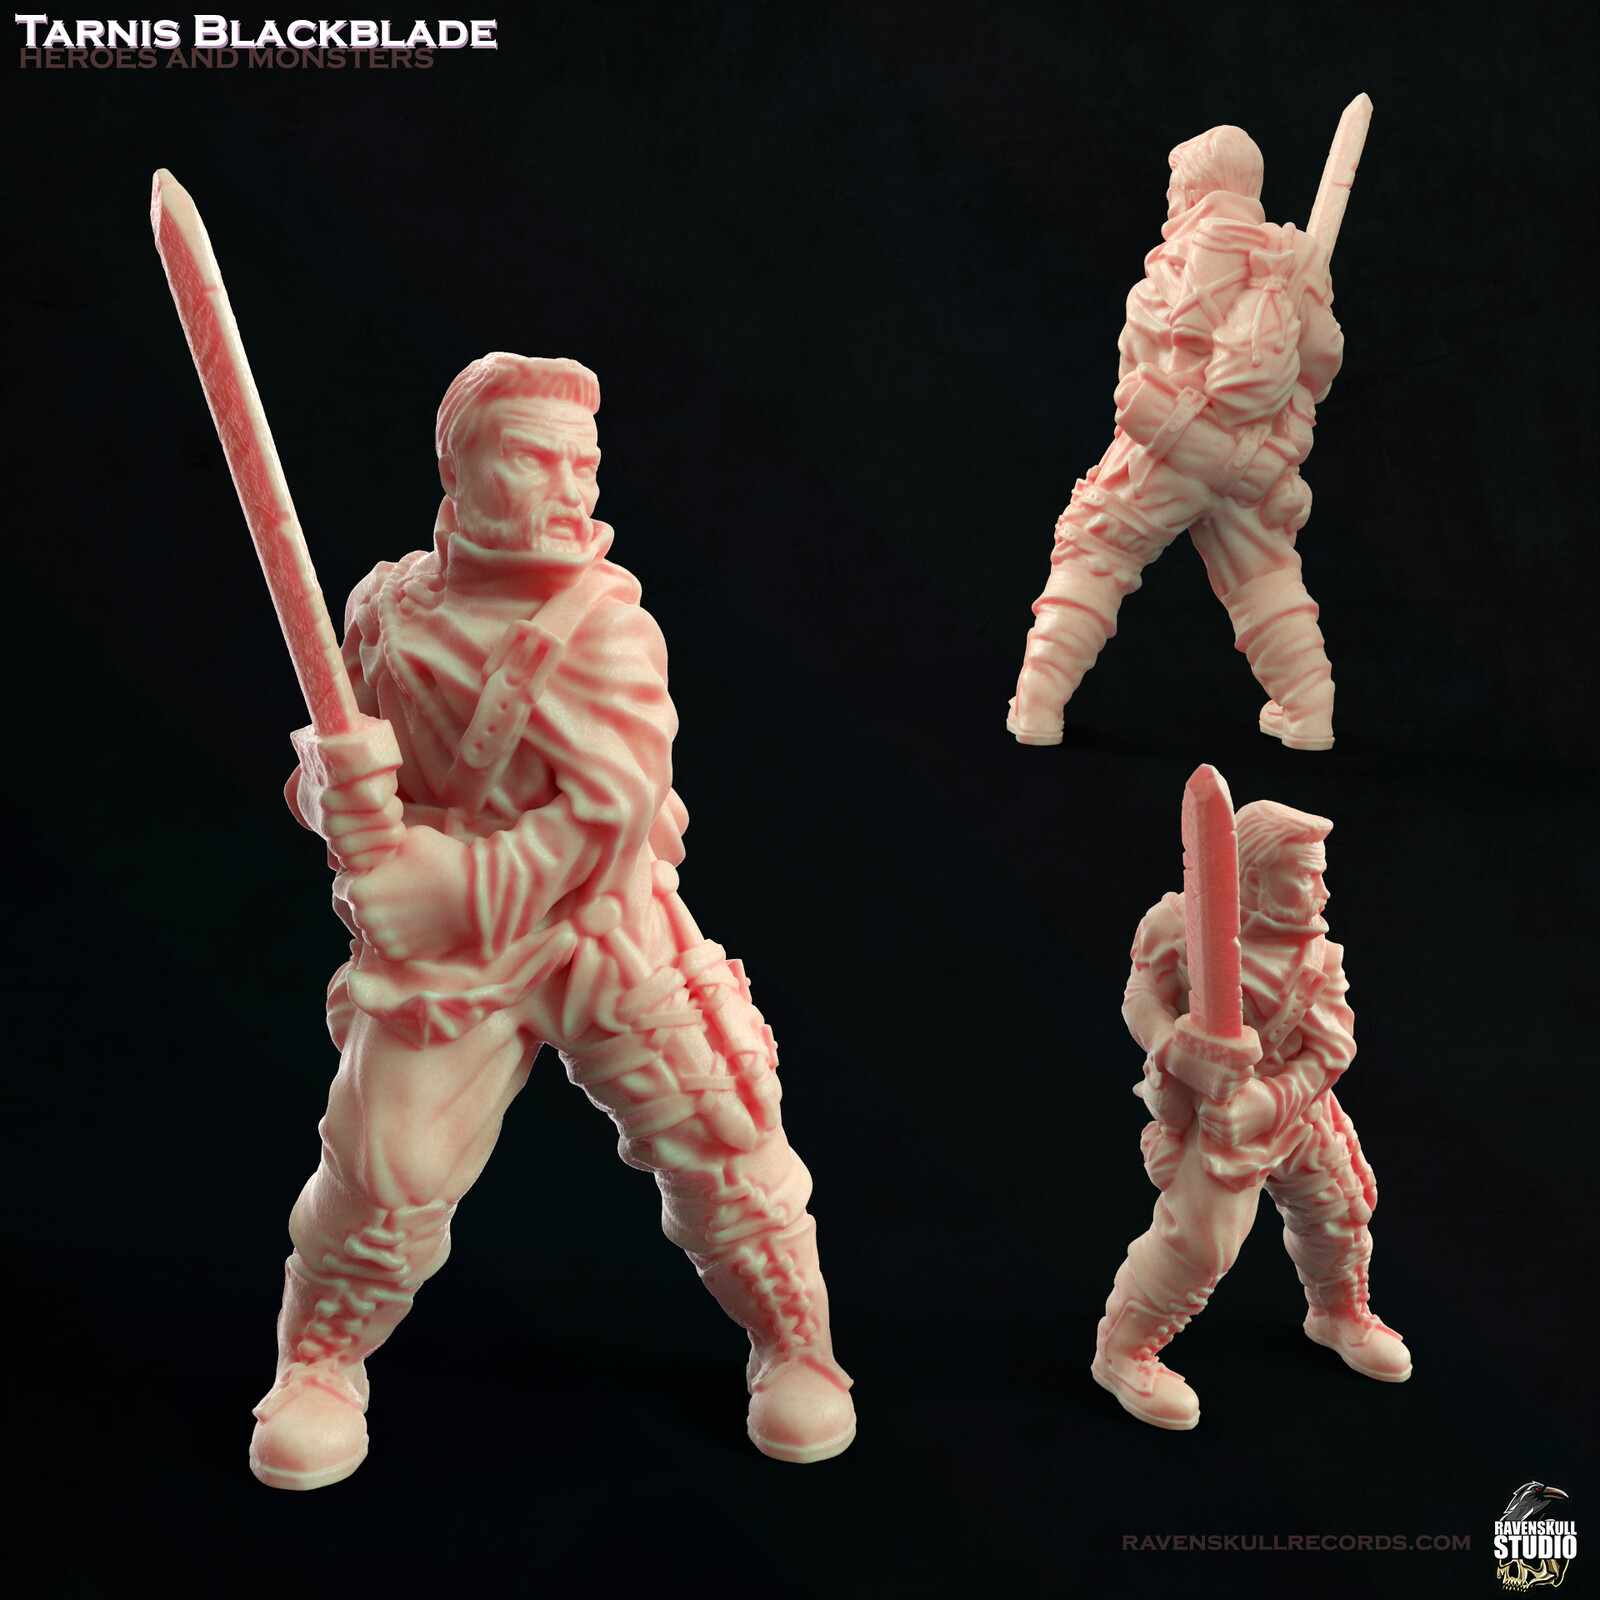 Warrior Miniature: Tarnis Blackblade